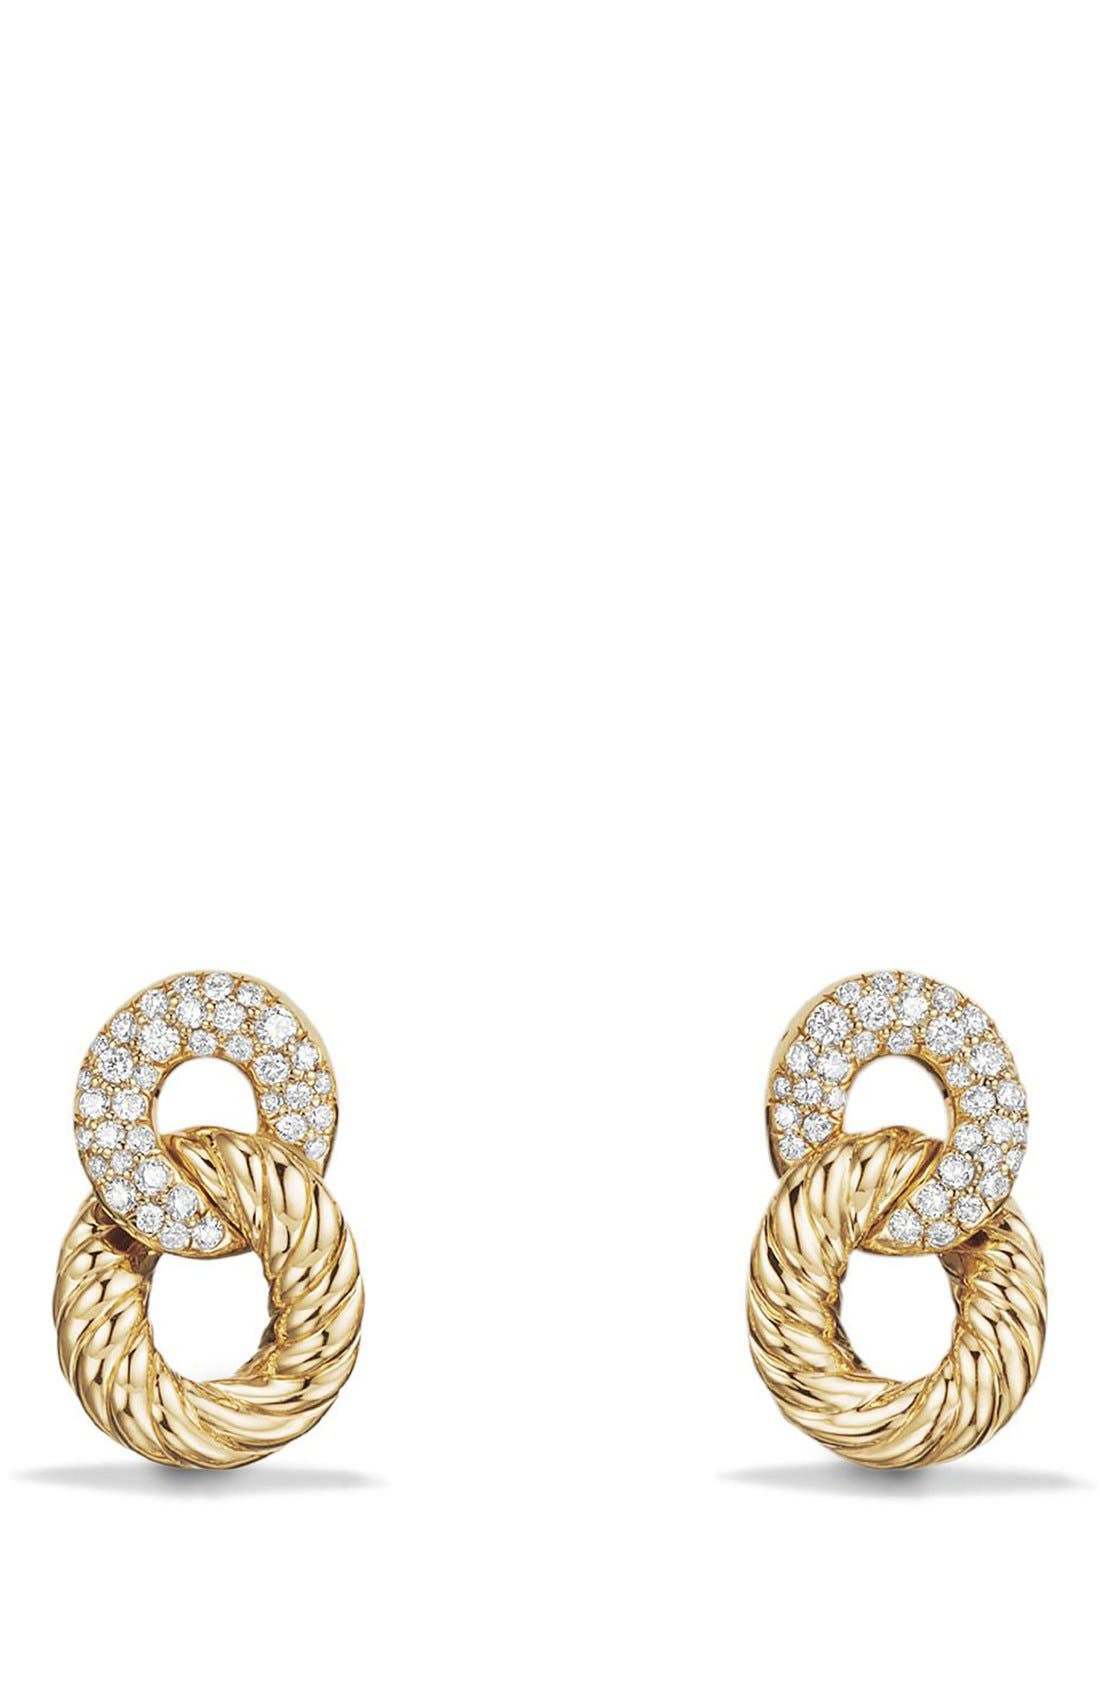 Extra-Small Curb Link Drop Earrings with Diamond in 18K Gold,                             Main thumbnail 1, color,                             YELLOW GOLD/ DIAMOND